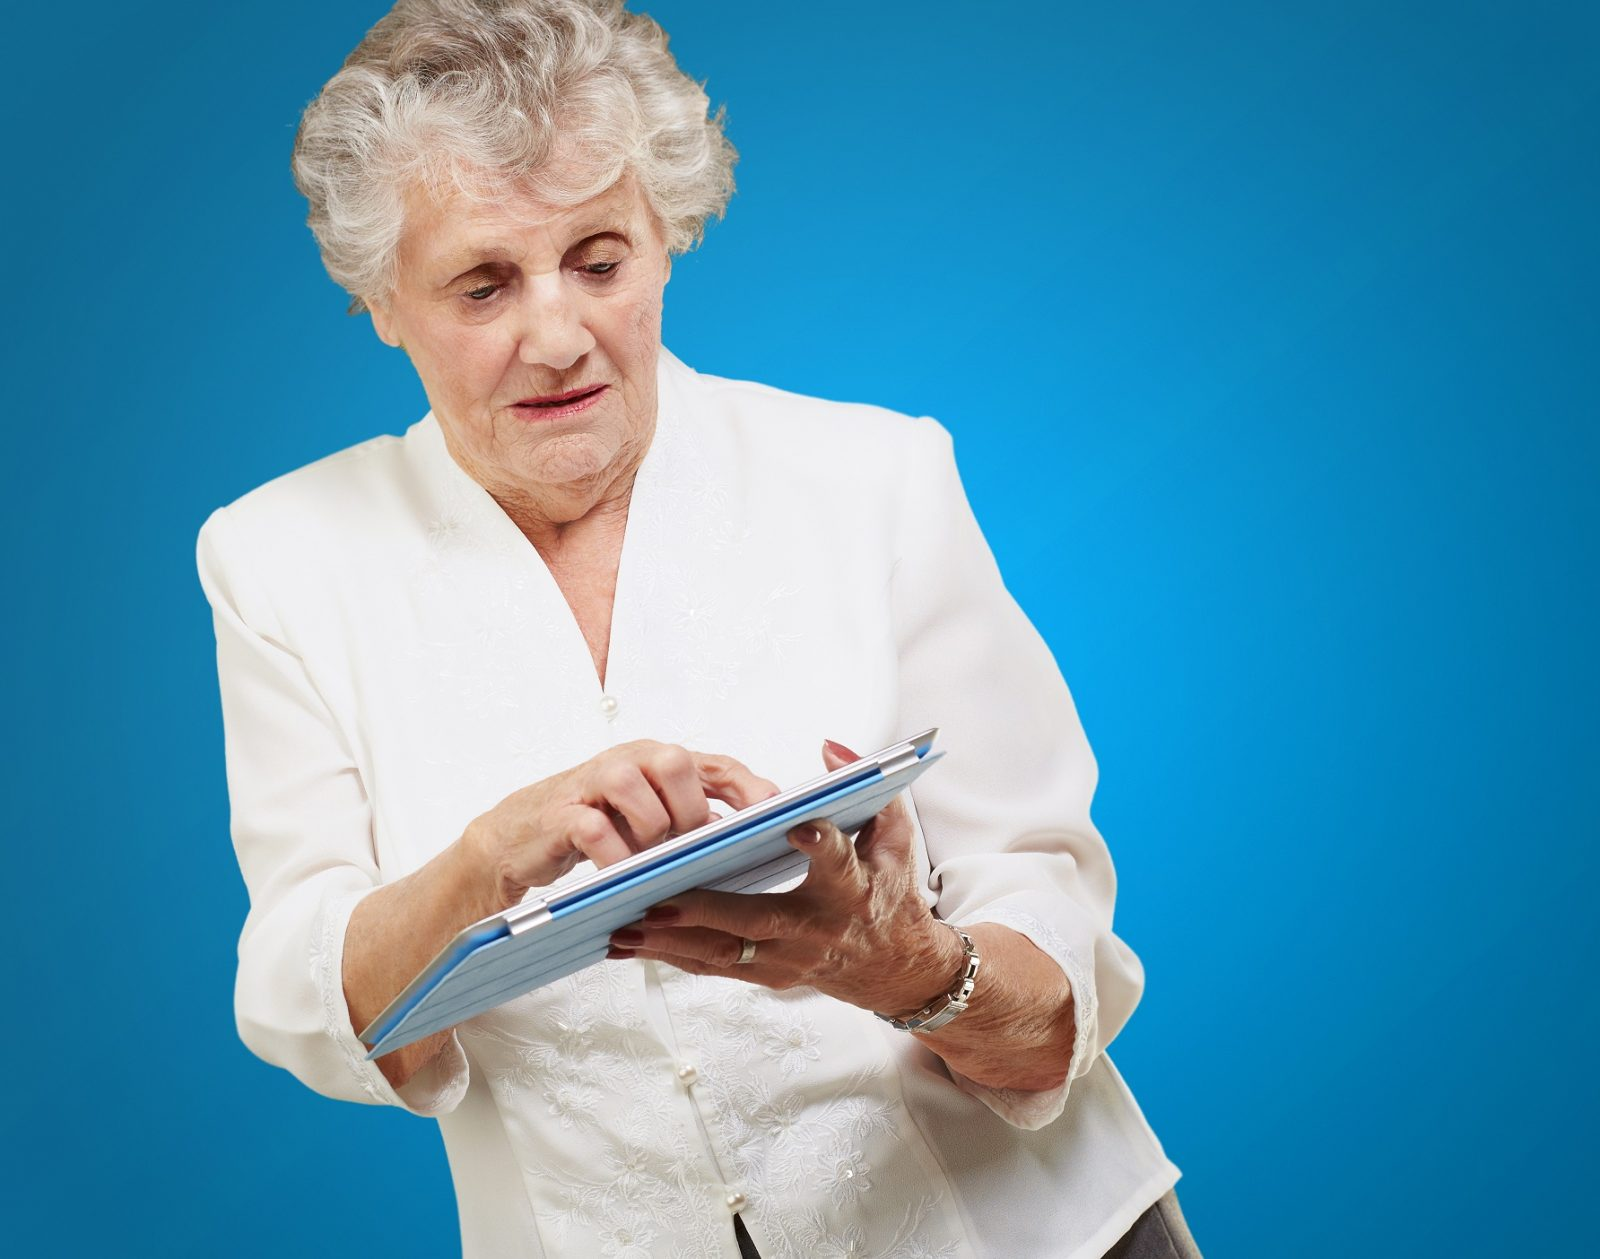 Gadgets (and sometimes even moms) never grow old. (ShutterStock)